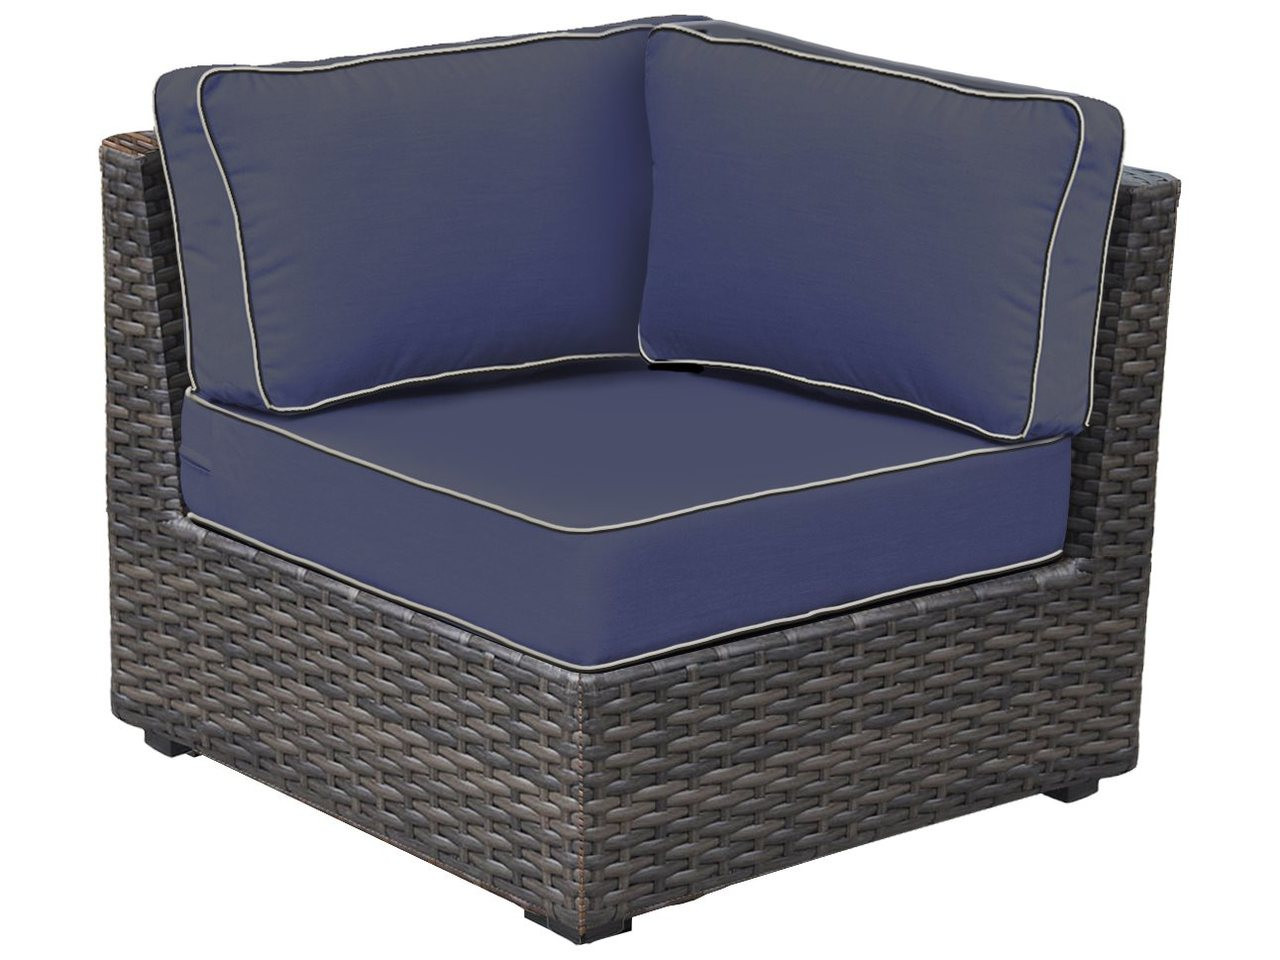 Replacement Cushions Outdoor Patio Furniture Replacement Cushions Outdoor Wicker Patio Furniture Replacement Cushions Forever Patio